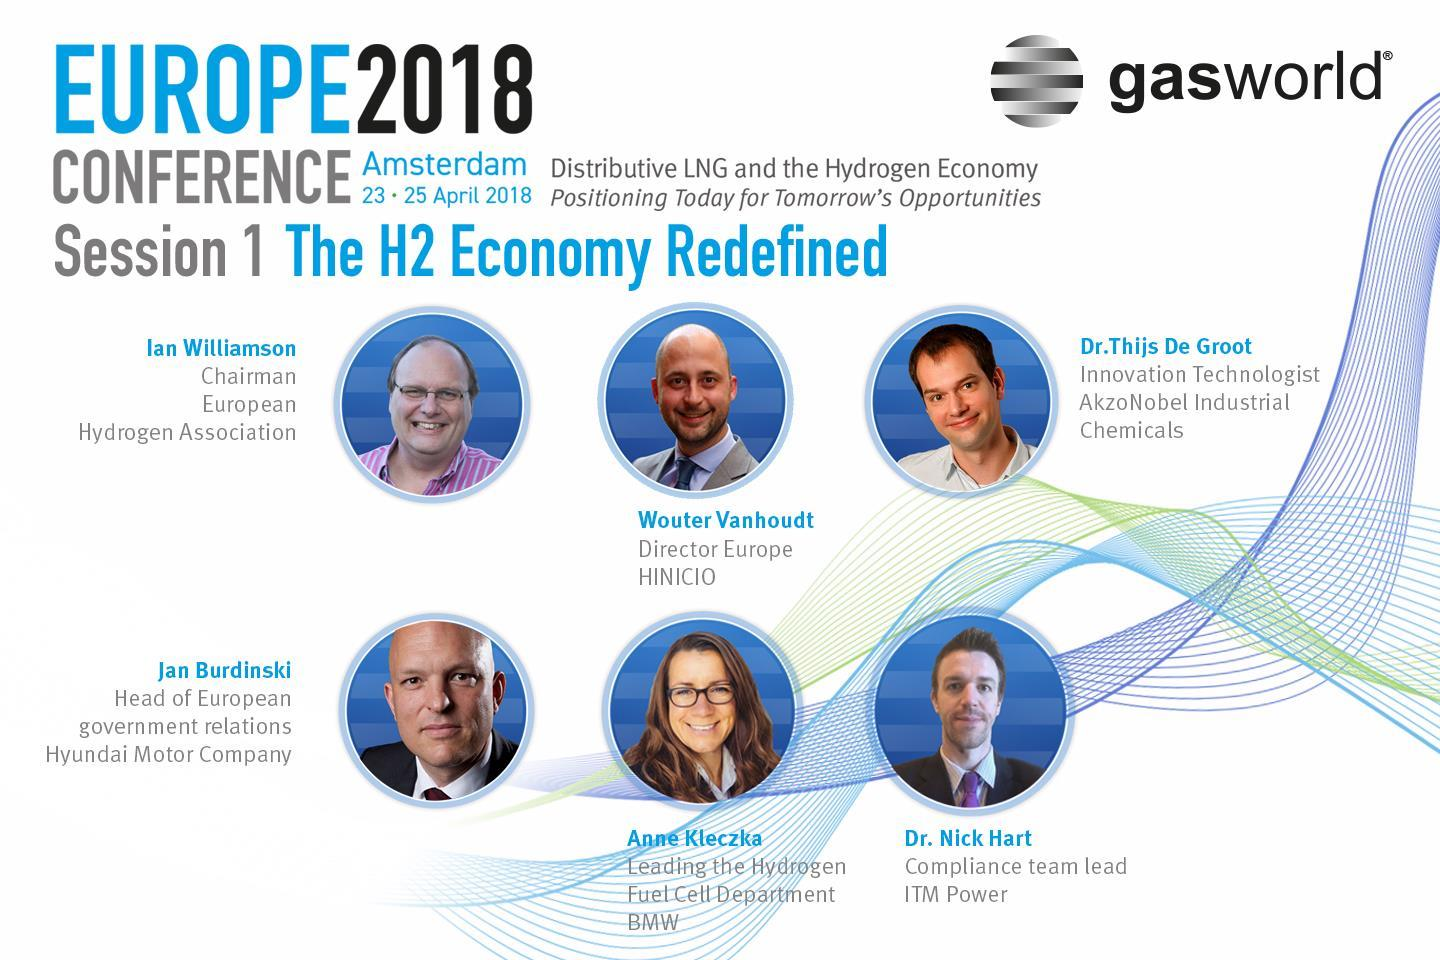 Day one of gasworld's Europe Conference closes | News | gasworld